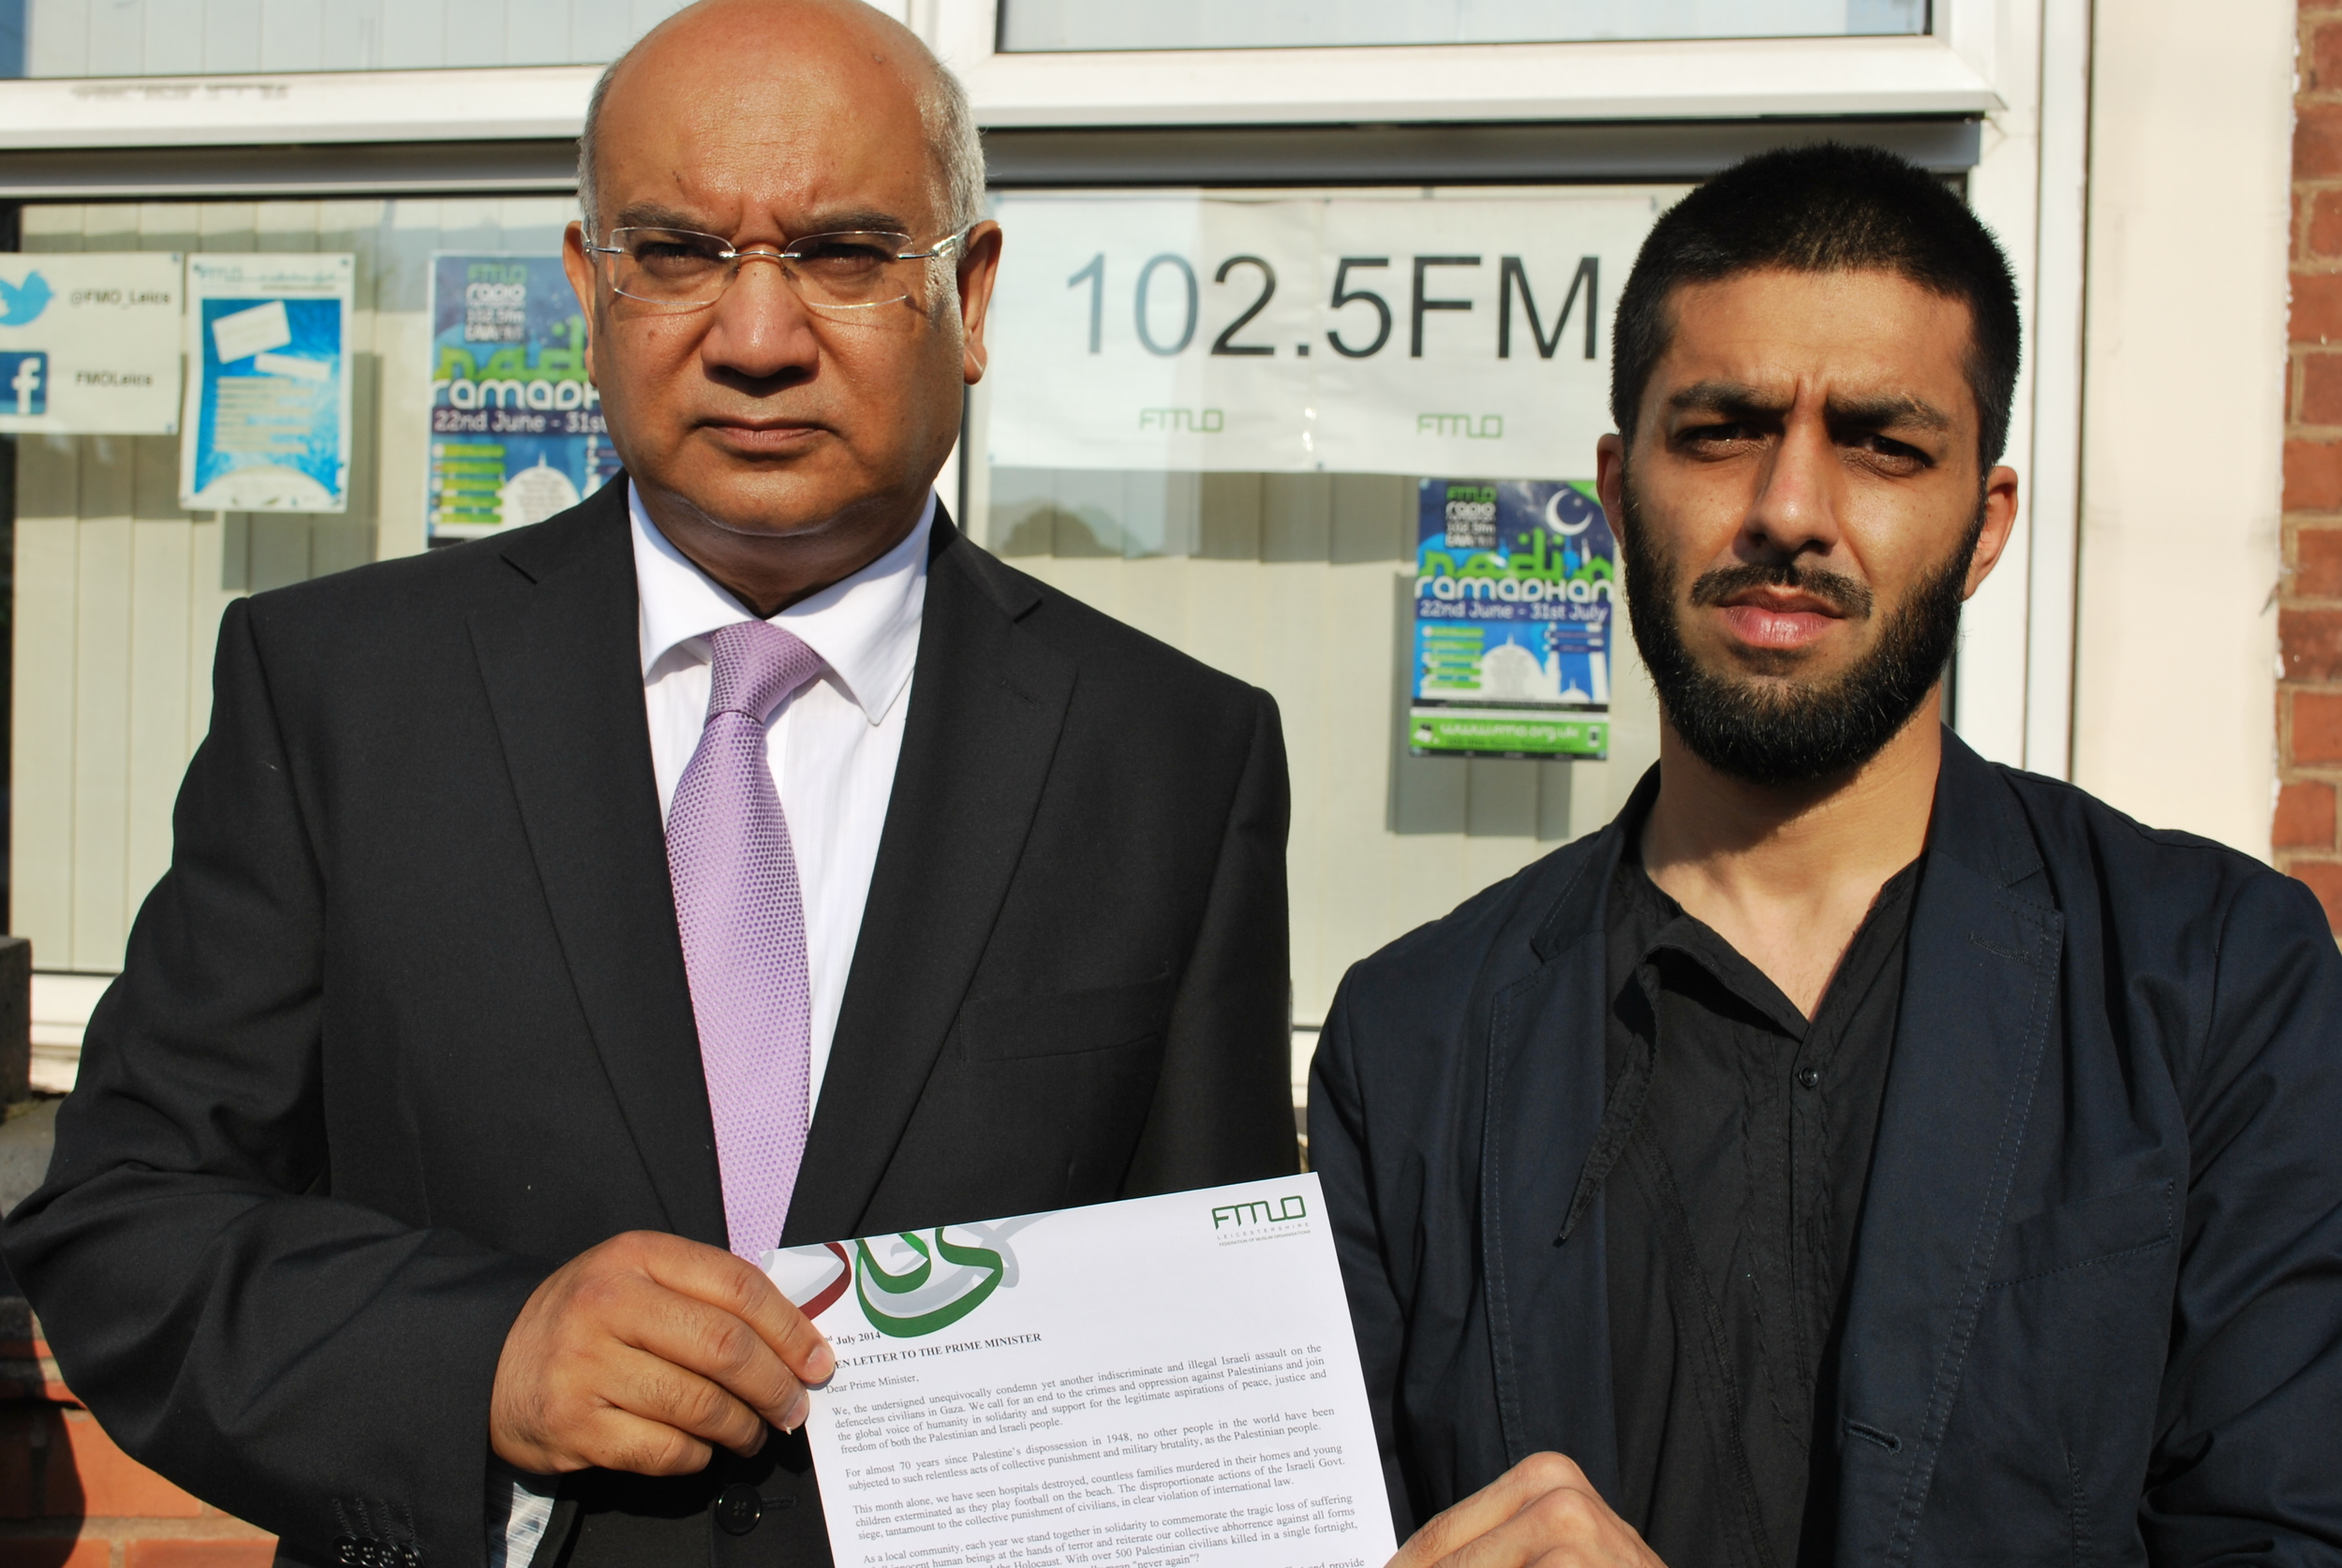 Rt Hon MP Keith Vaz with the Chair of the Federation of Muslim Organisations (FMO) Riyaz Laher with the letter which will be sent to the Prime Minister David Cameron.